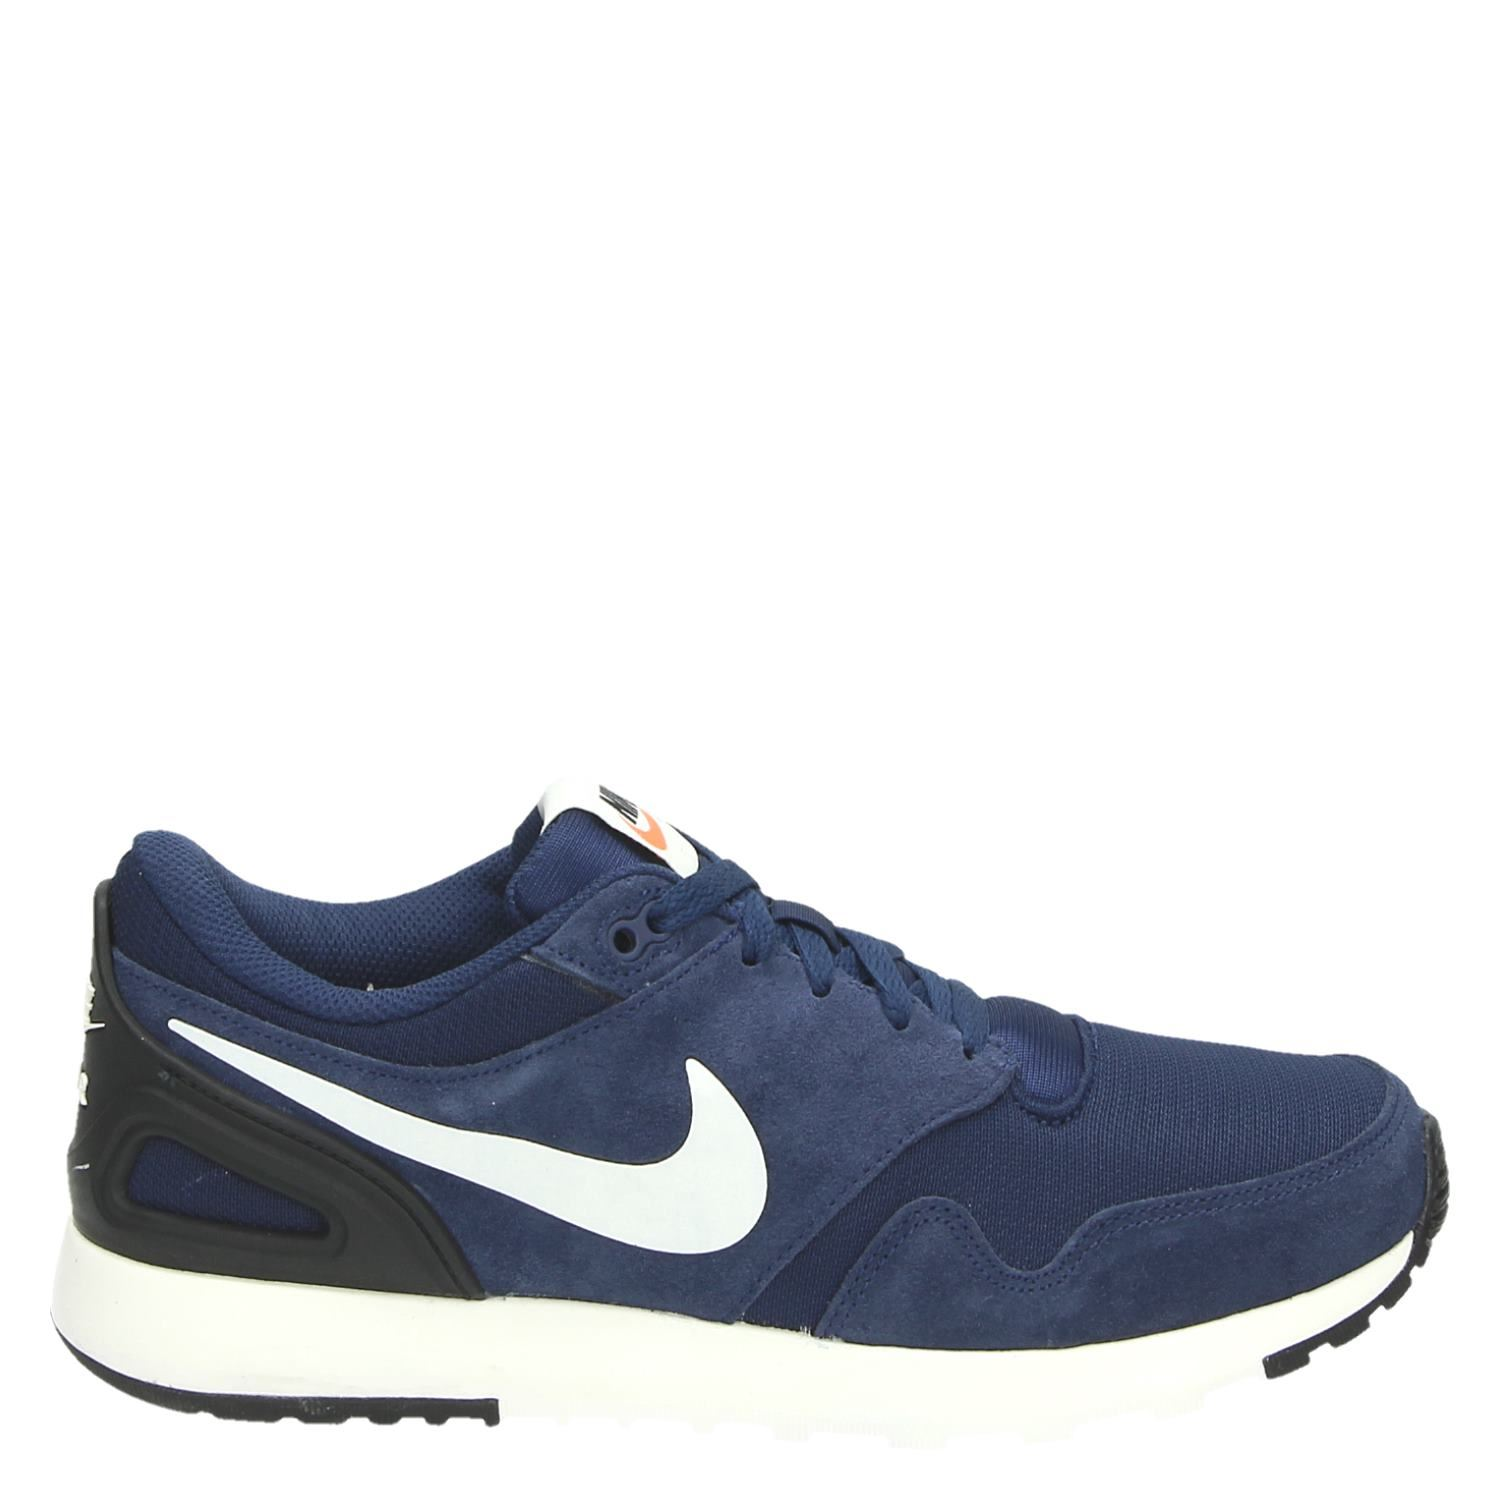 Chaussures Nike Bleu Pour Les Hommes YKY2Rn9